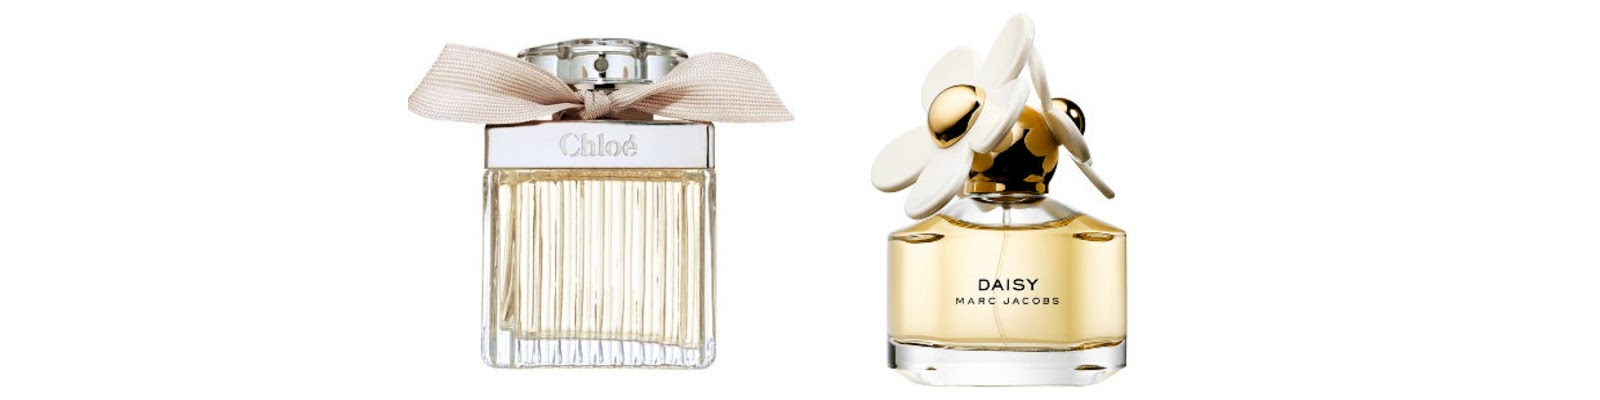 Chloé and Marc Jacobs Daisy